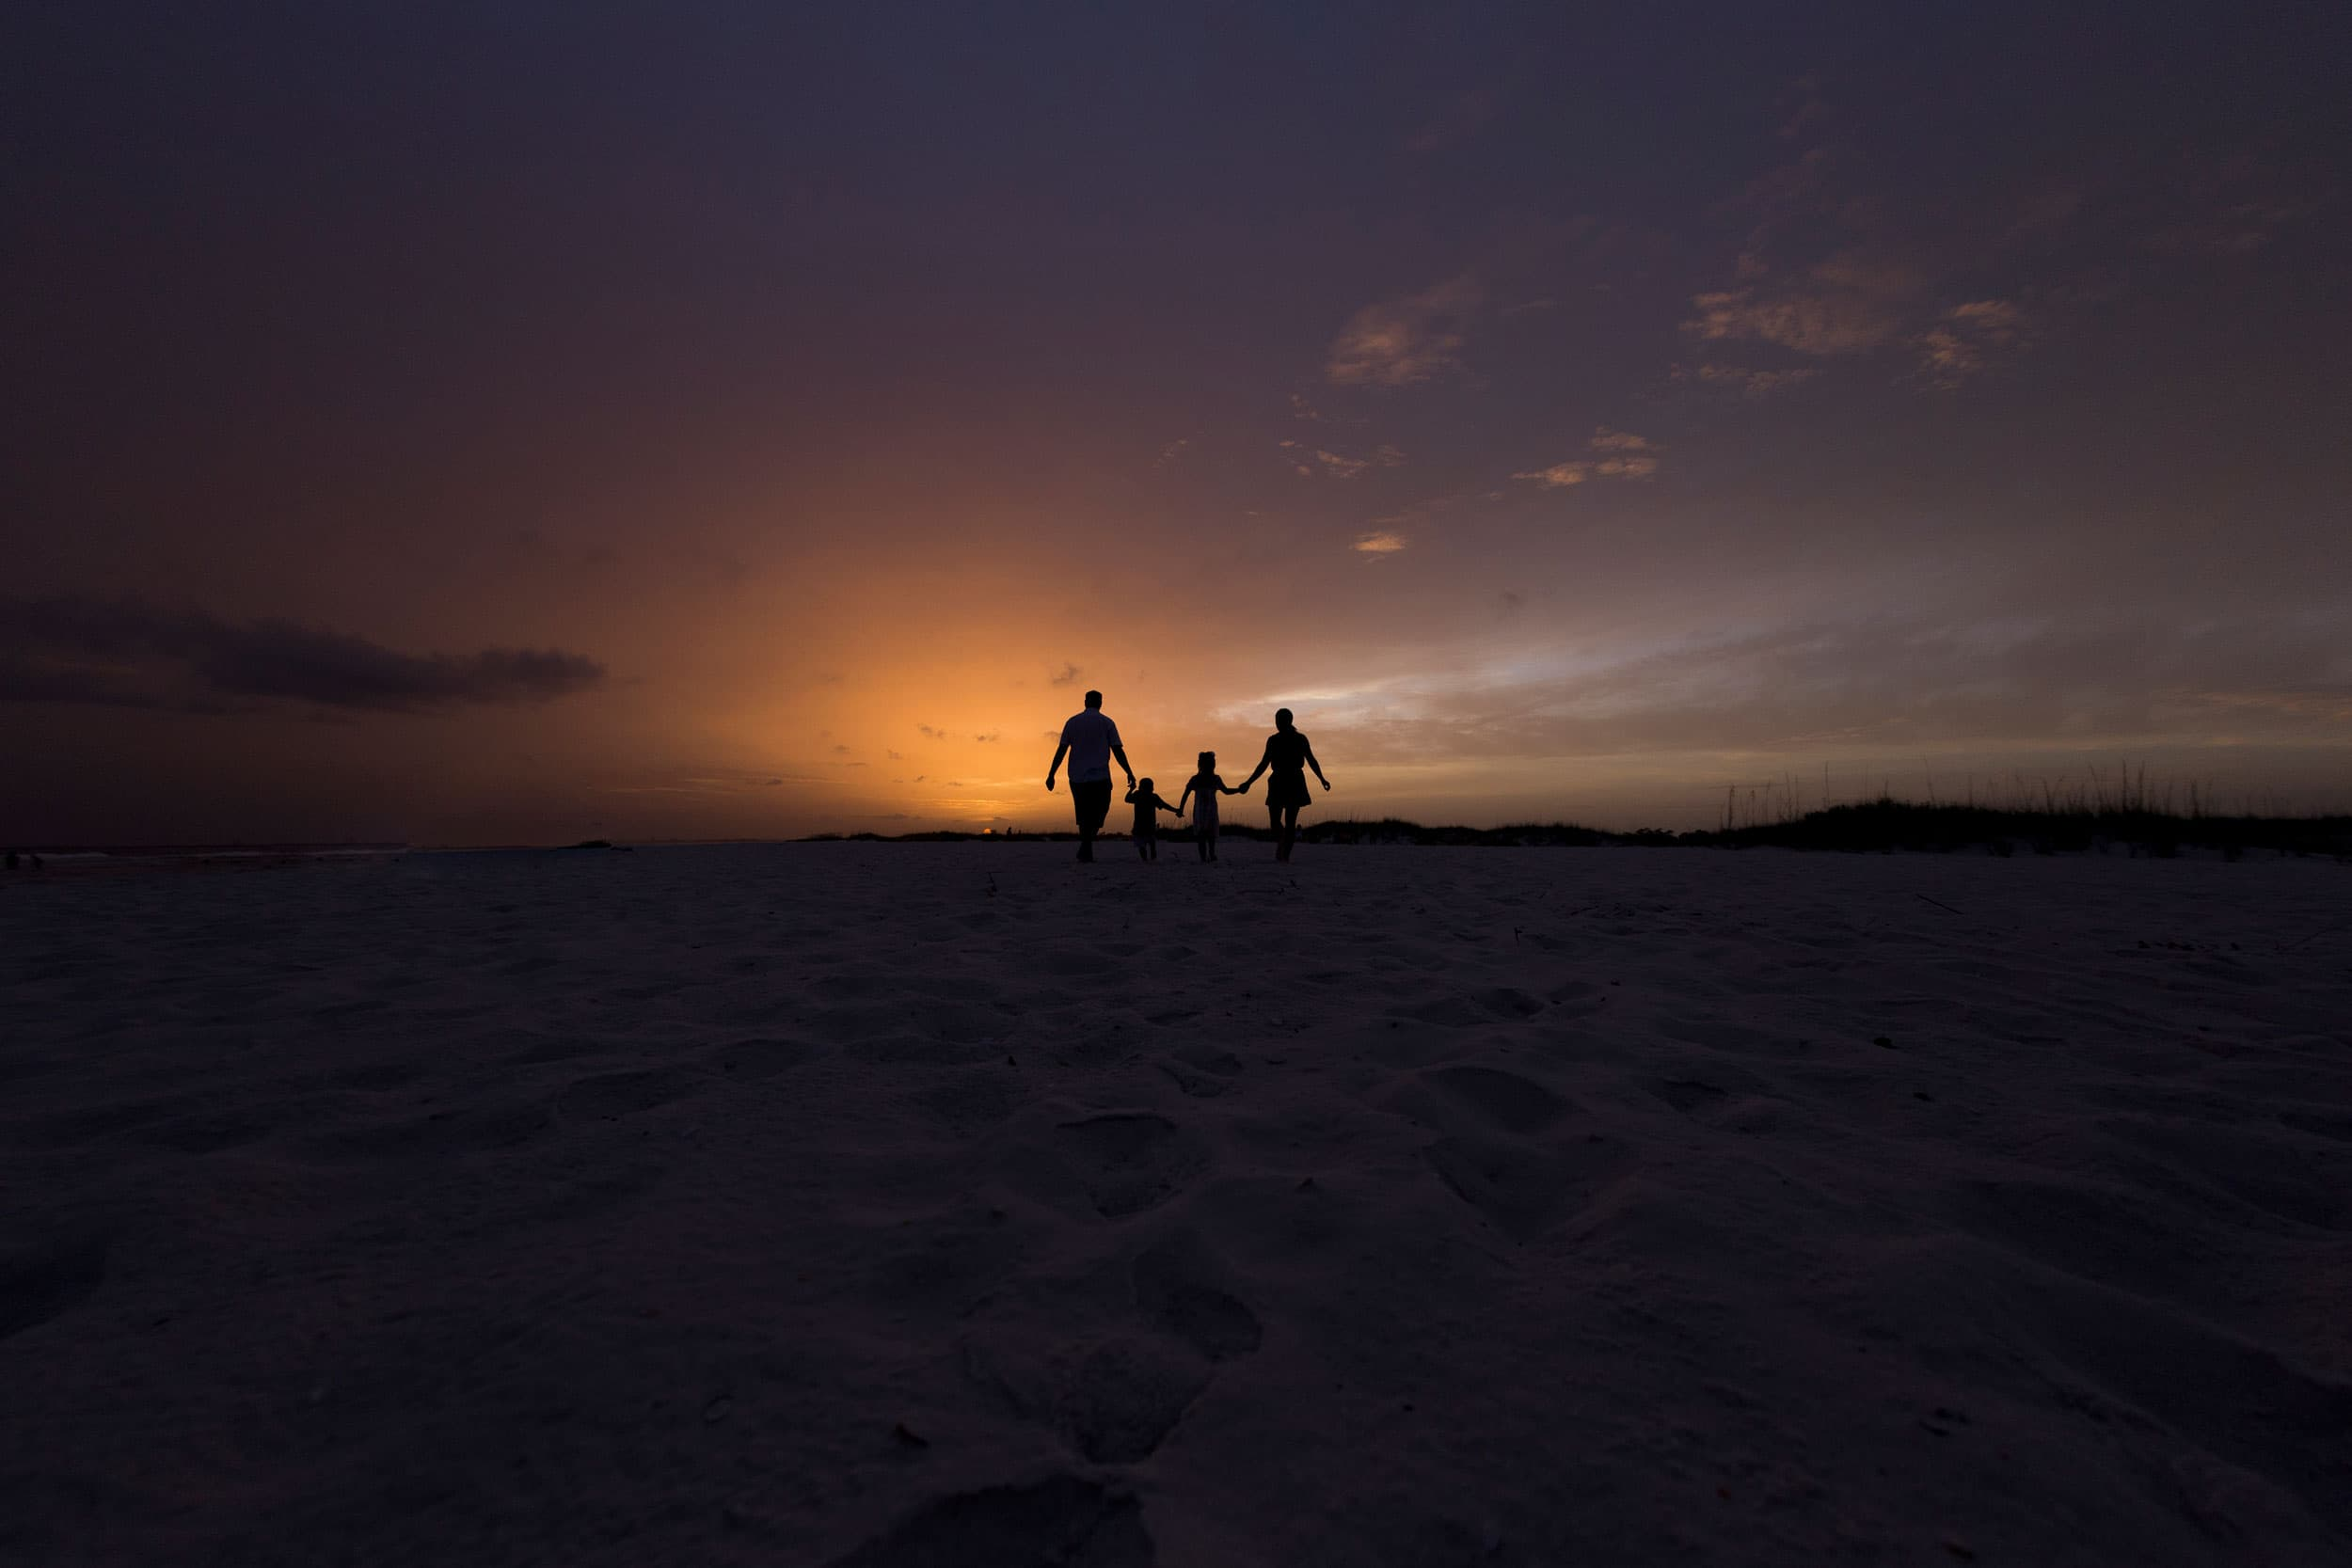 Gulf Shores Alabama beach photographer captures sunset